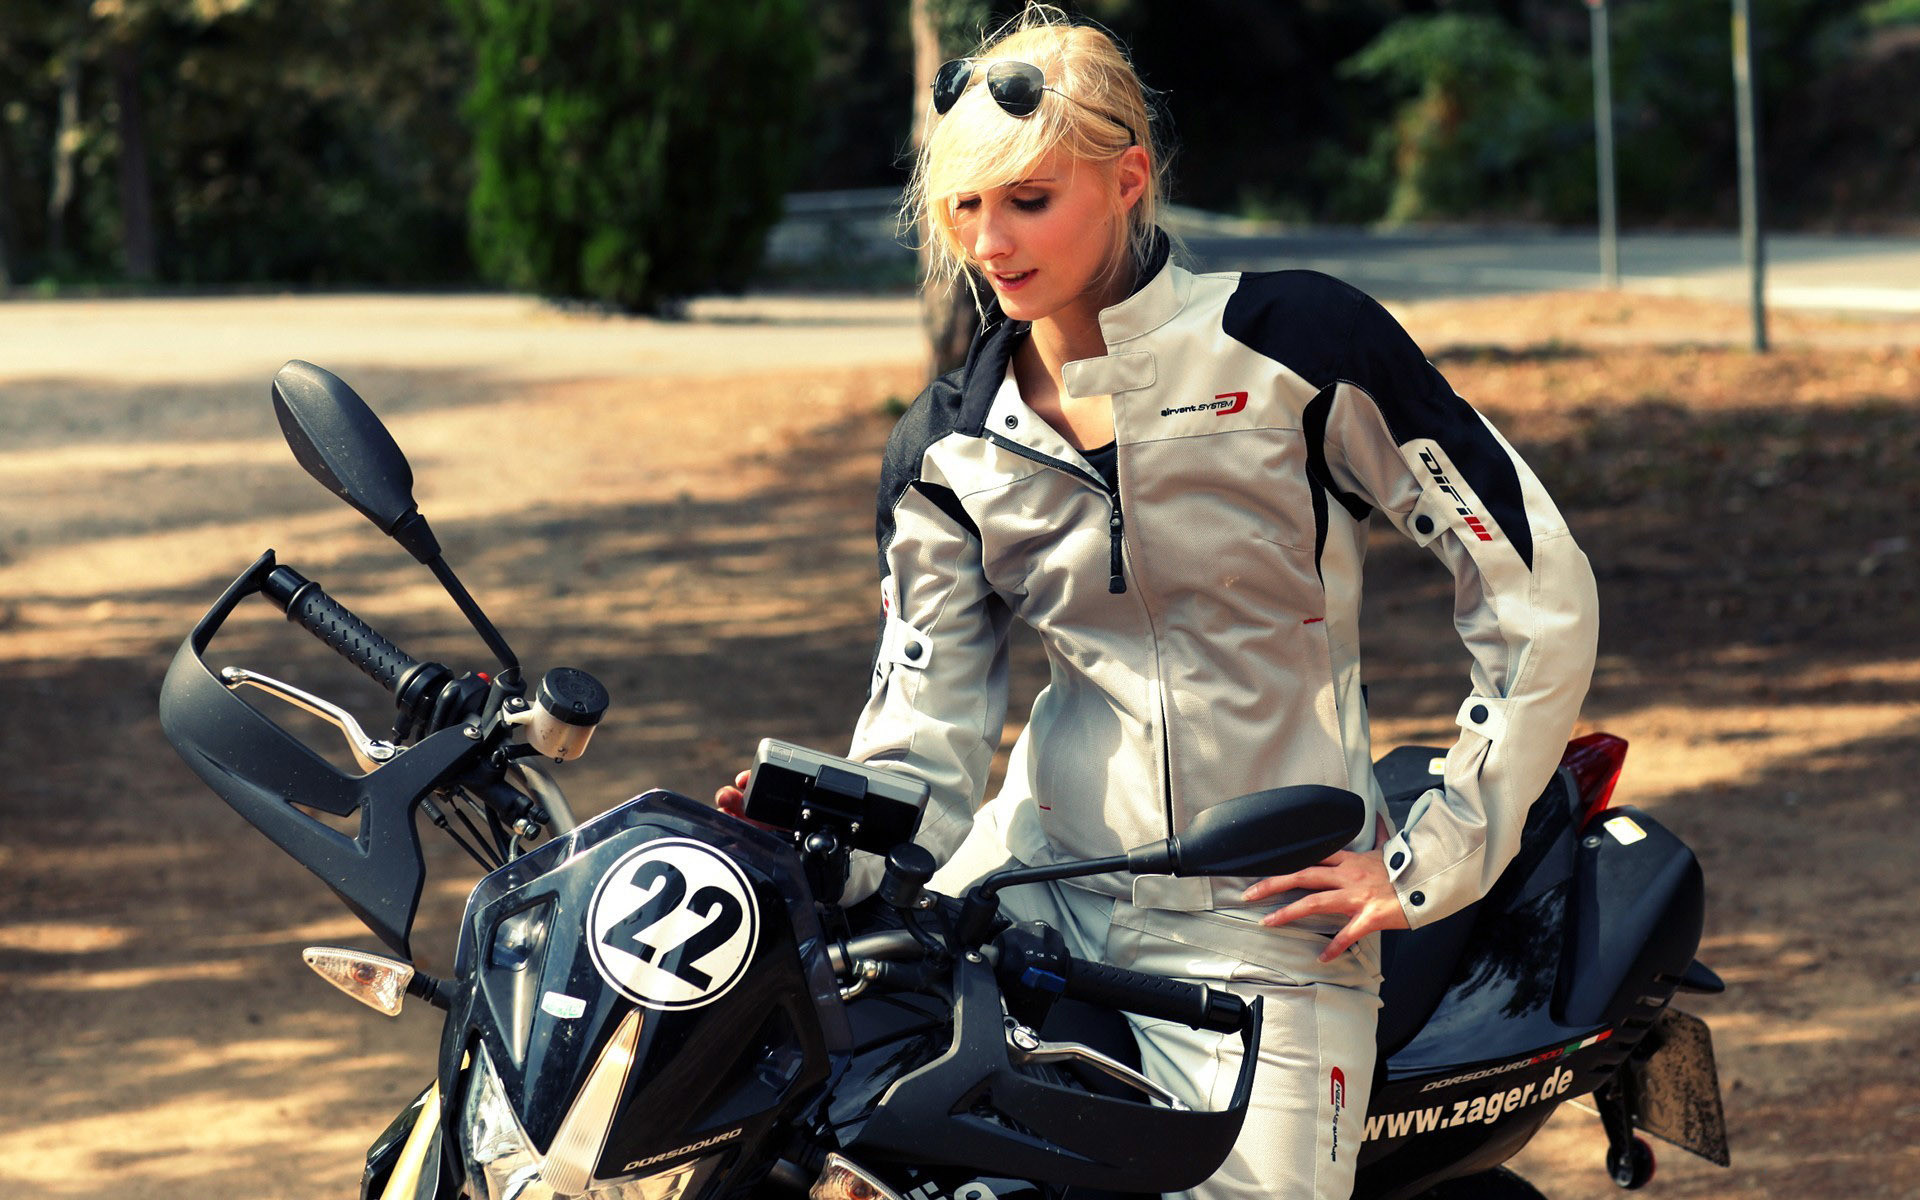 … Woman on the motorcycle HD Wallpaper 1920×1200